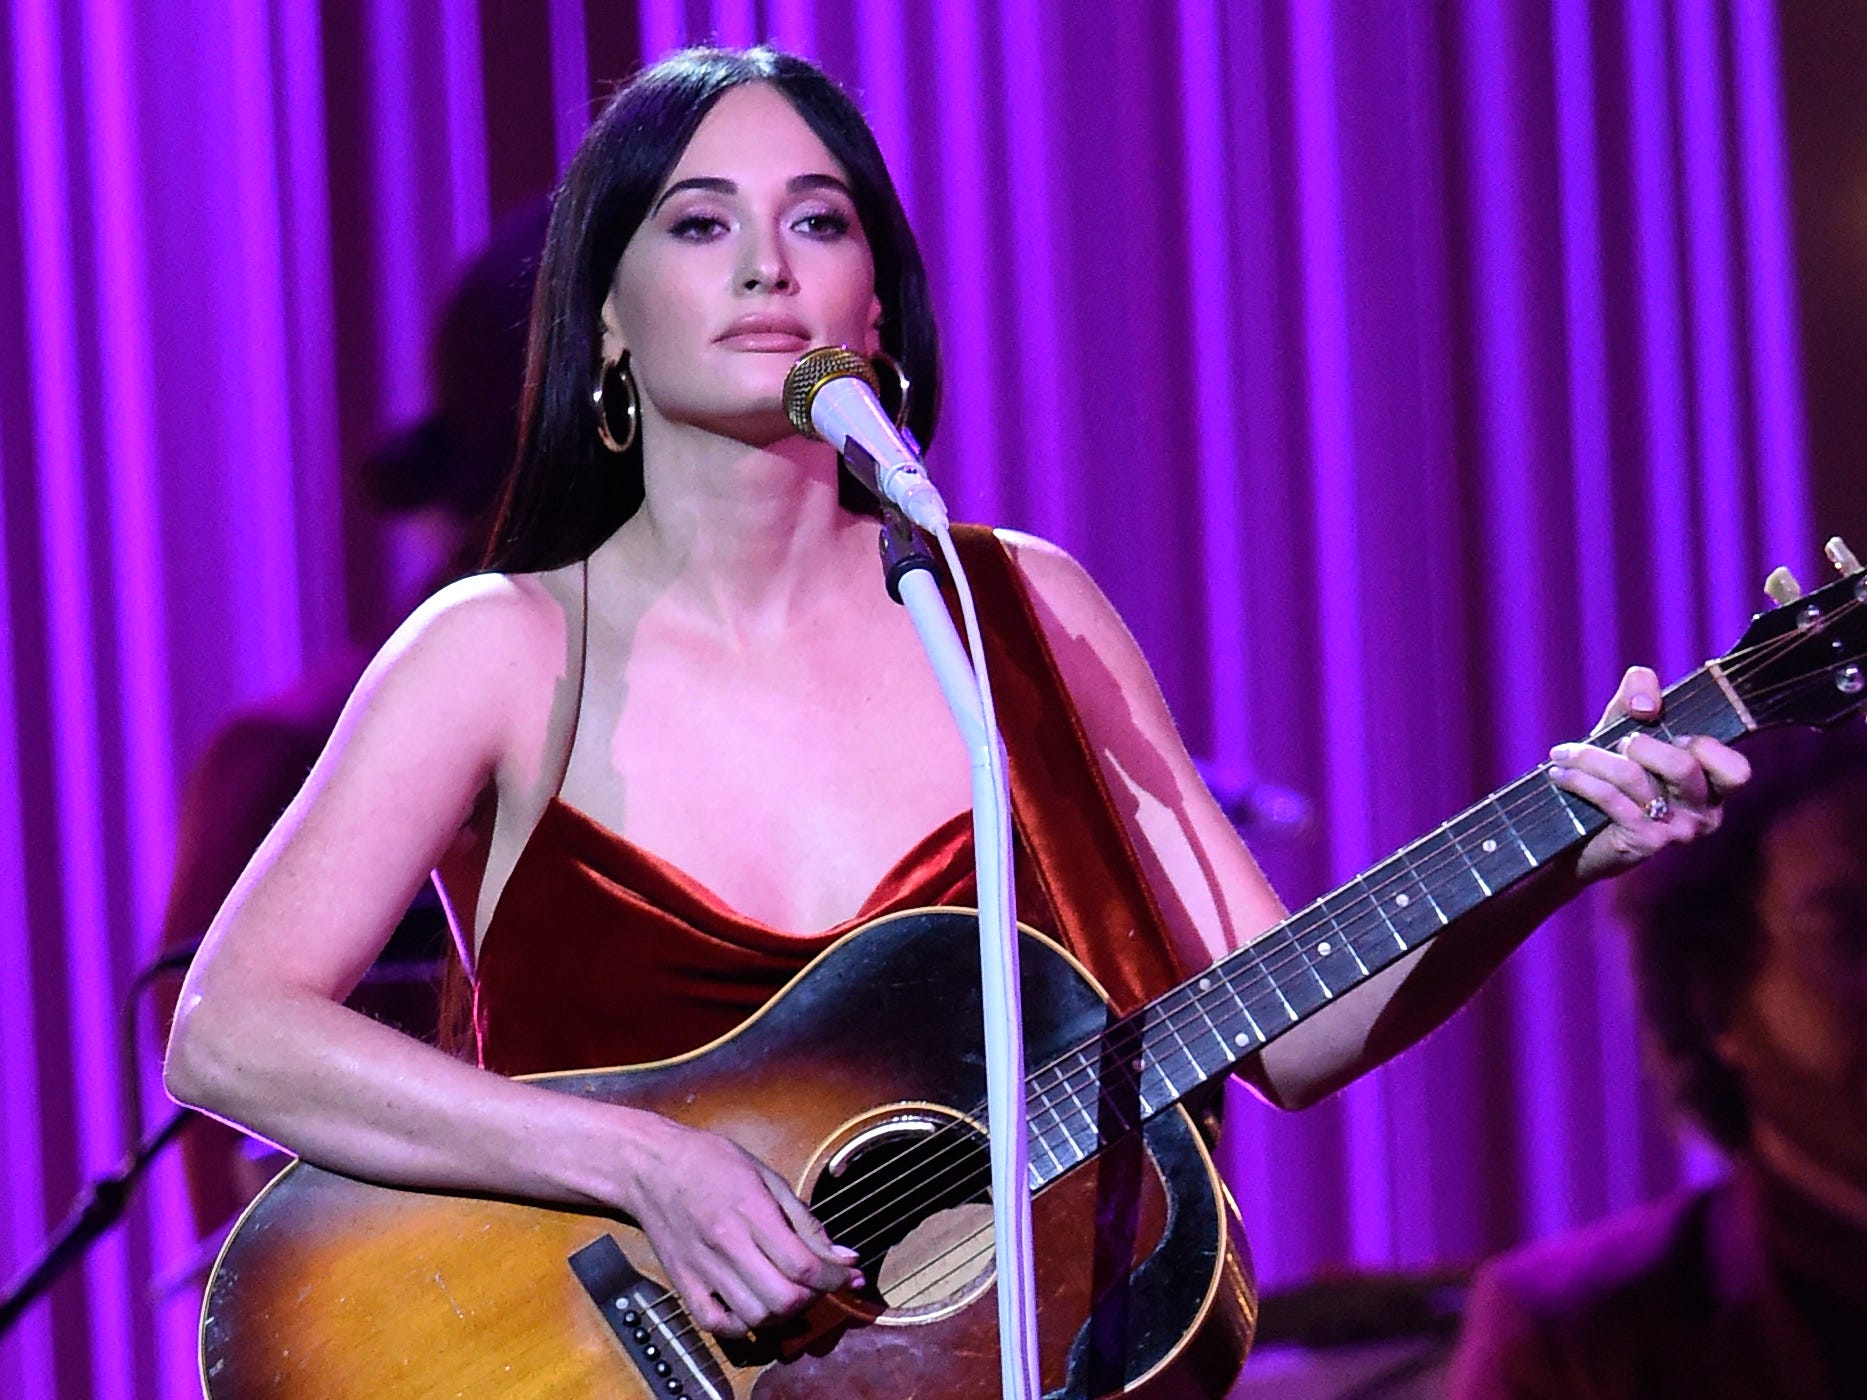 Kacey Musgraves performs during the 52nd Annual CMA Awards at Bridgestone Arena Wednesday Nov. 14, 2018, in Nashville, Tenn.